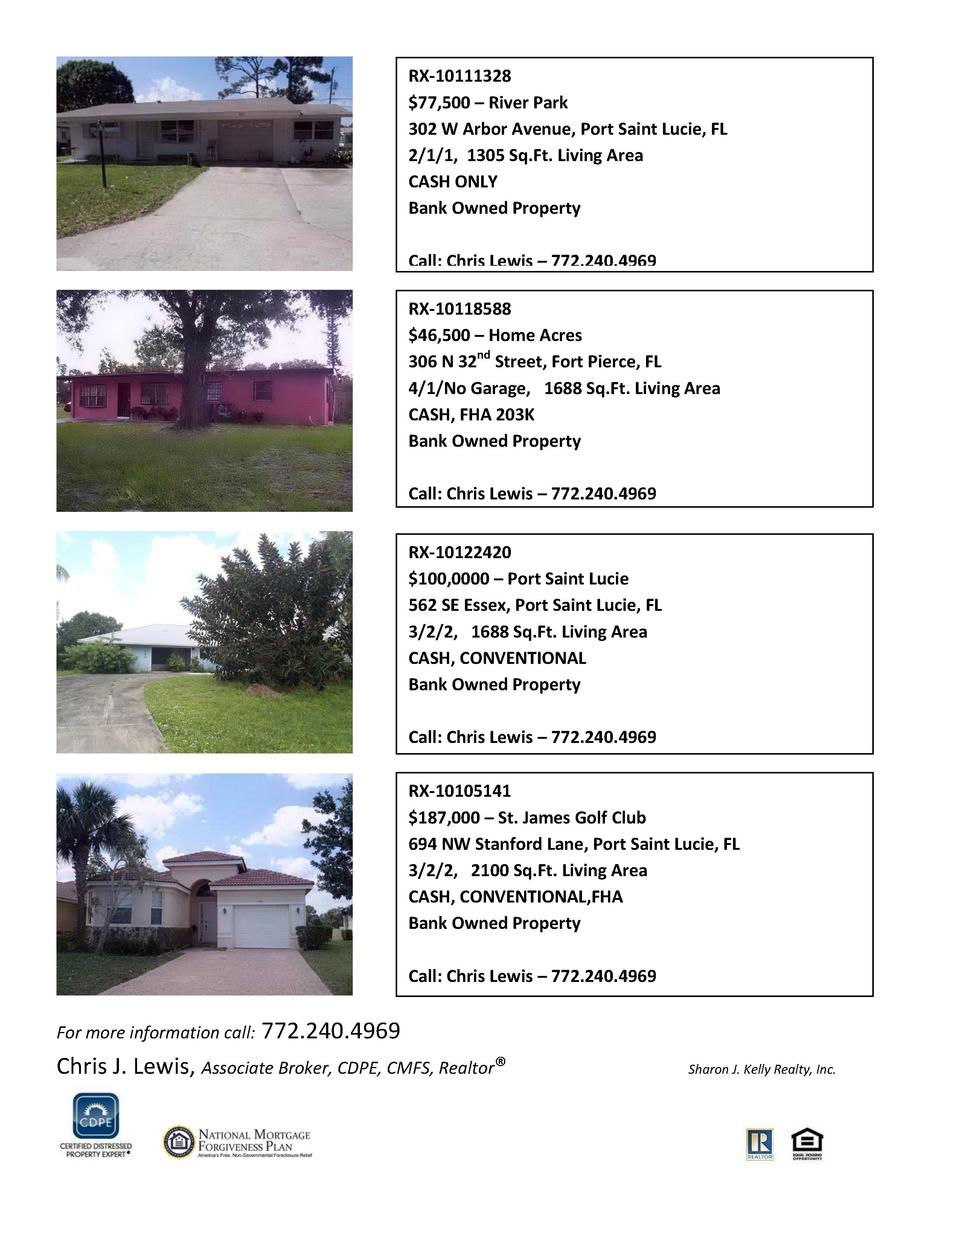 RX-10111328  77,500     River Park 302 W Arbor Avenue, Port Saint Lucie, FL 2 1 1, 1305 Sq.Ft. Living Area CASH ONLY Bank ...